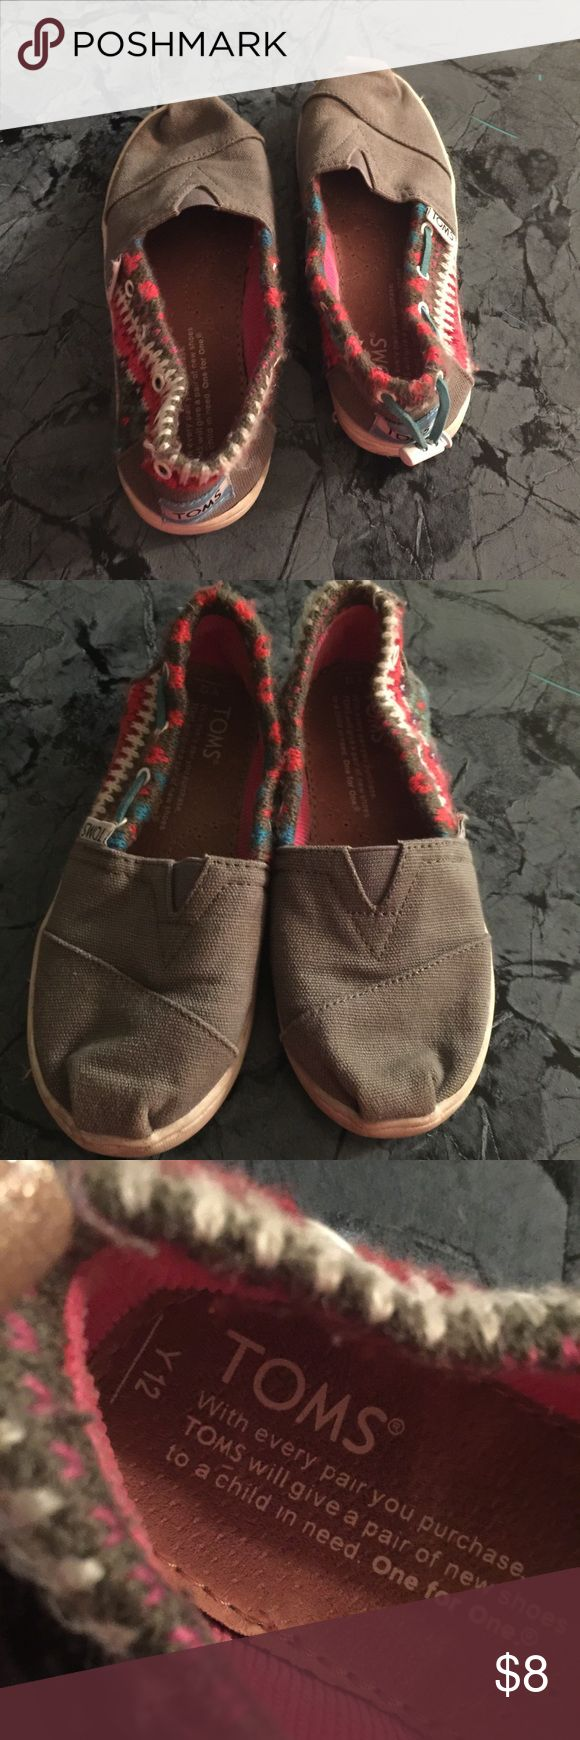 Kids toms Gently used condition one of the tassel are missing as seen in picture TOMS Shoes Sneakers